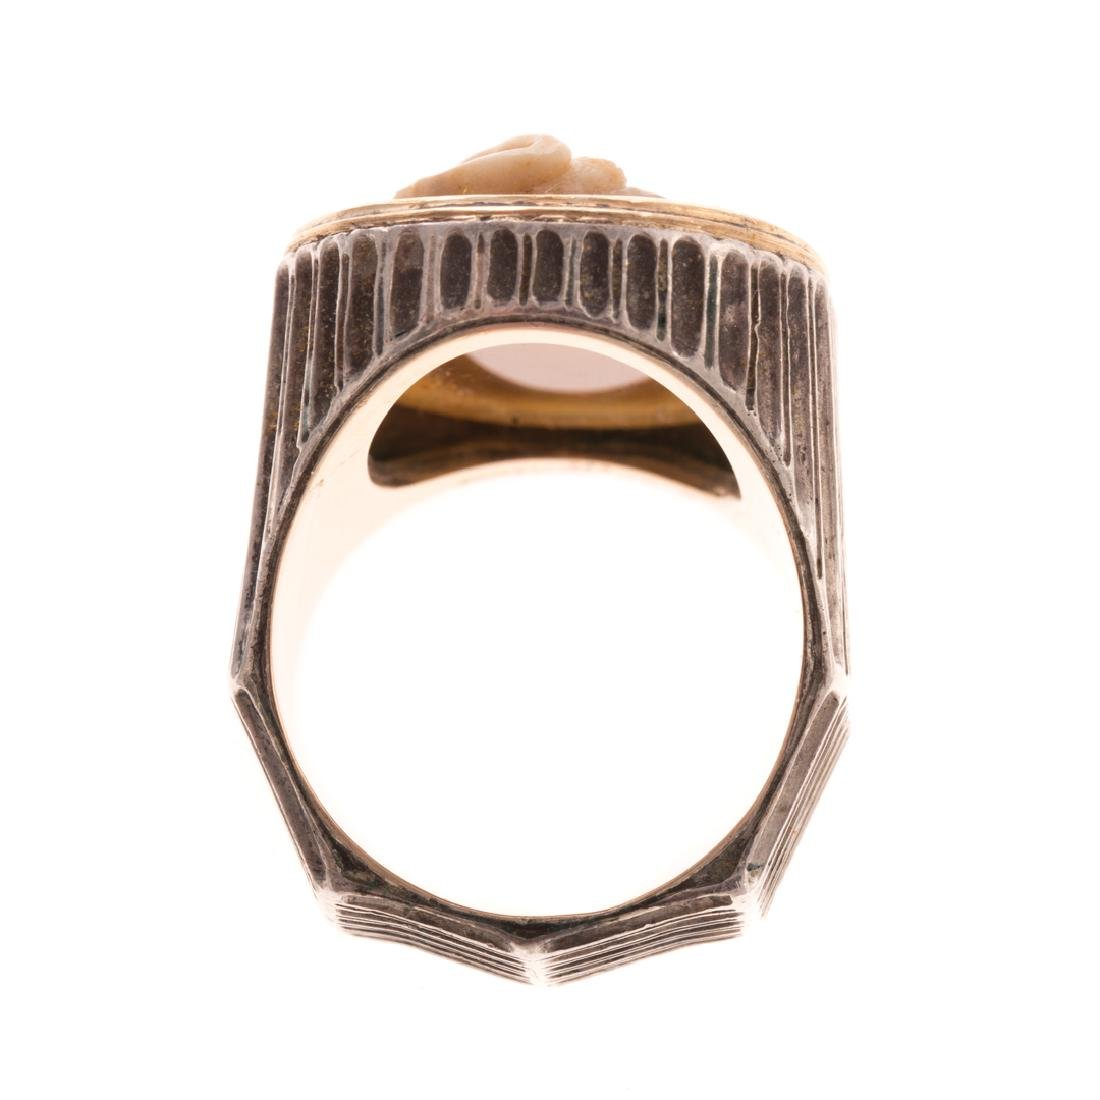 A 18K & Silver Cameo Ring by Buccellati - 3